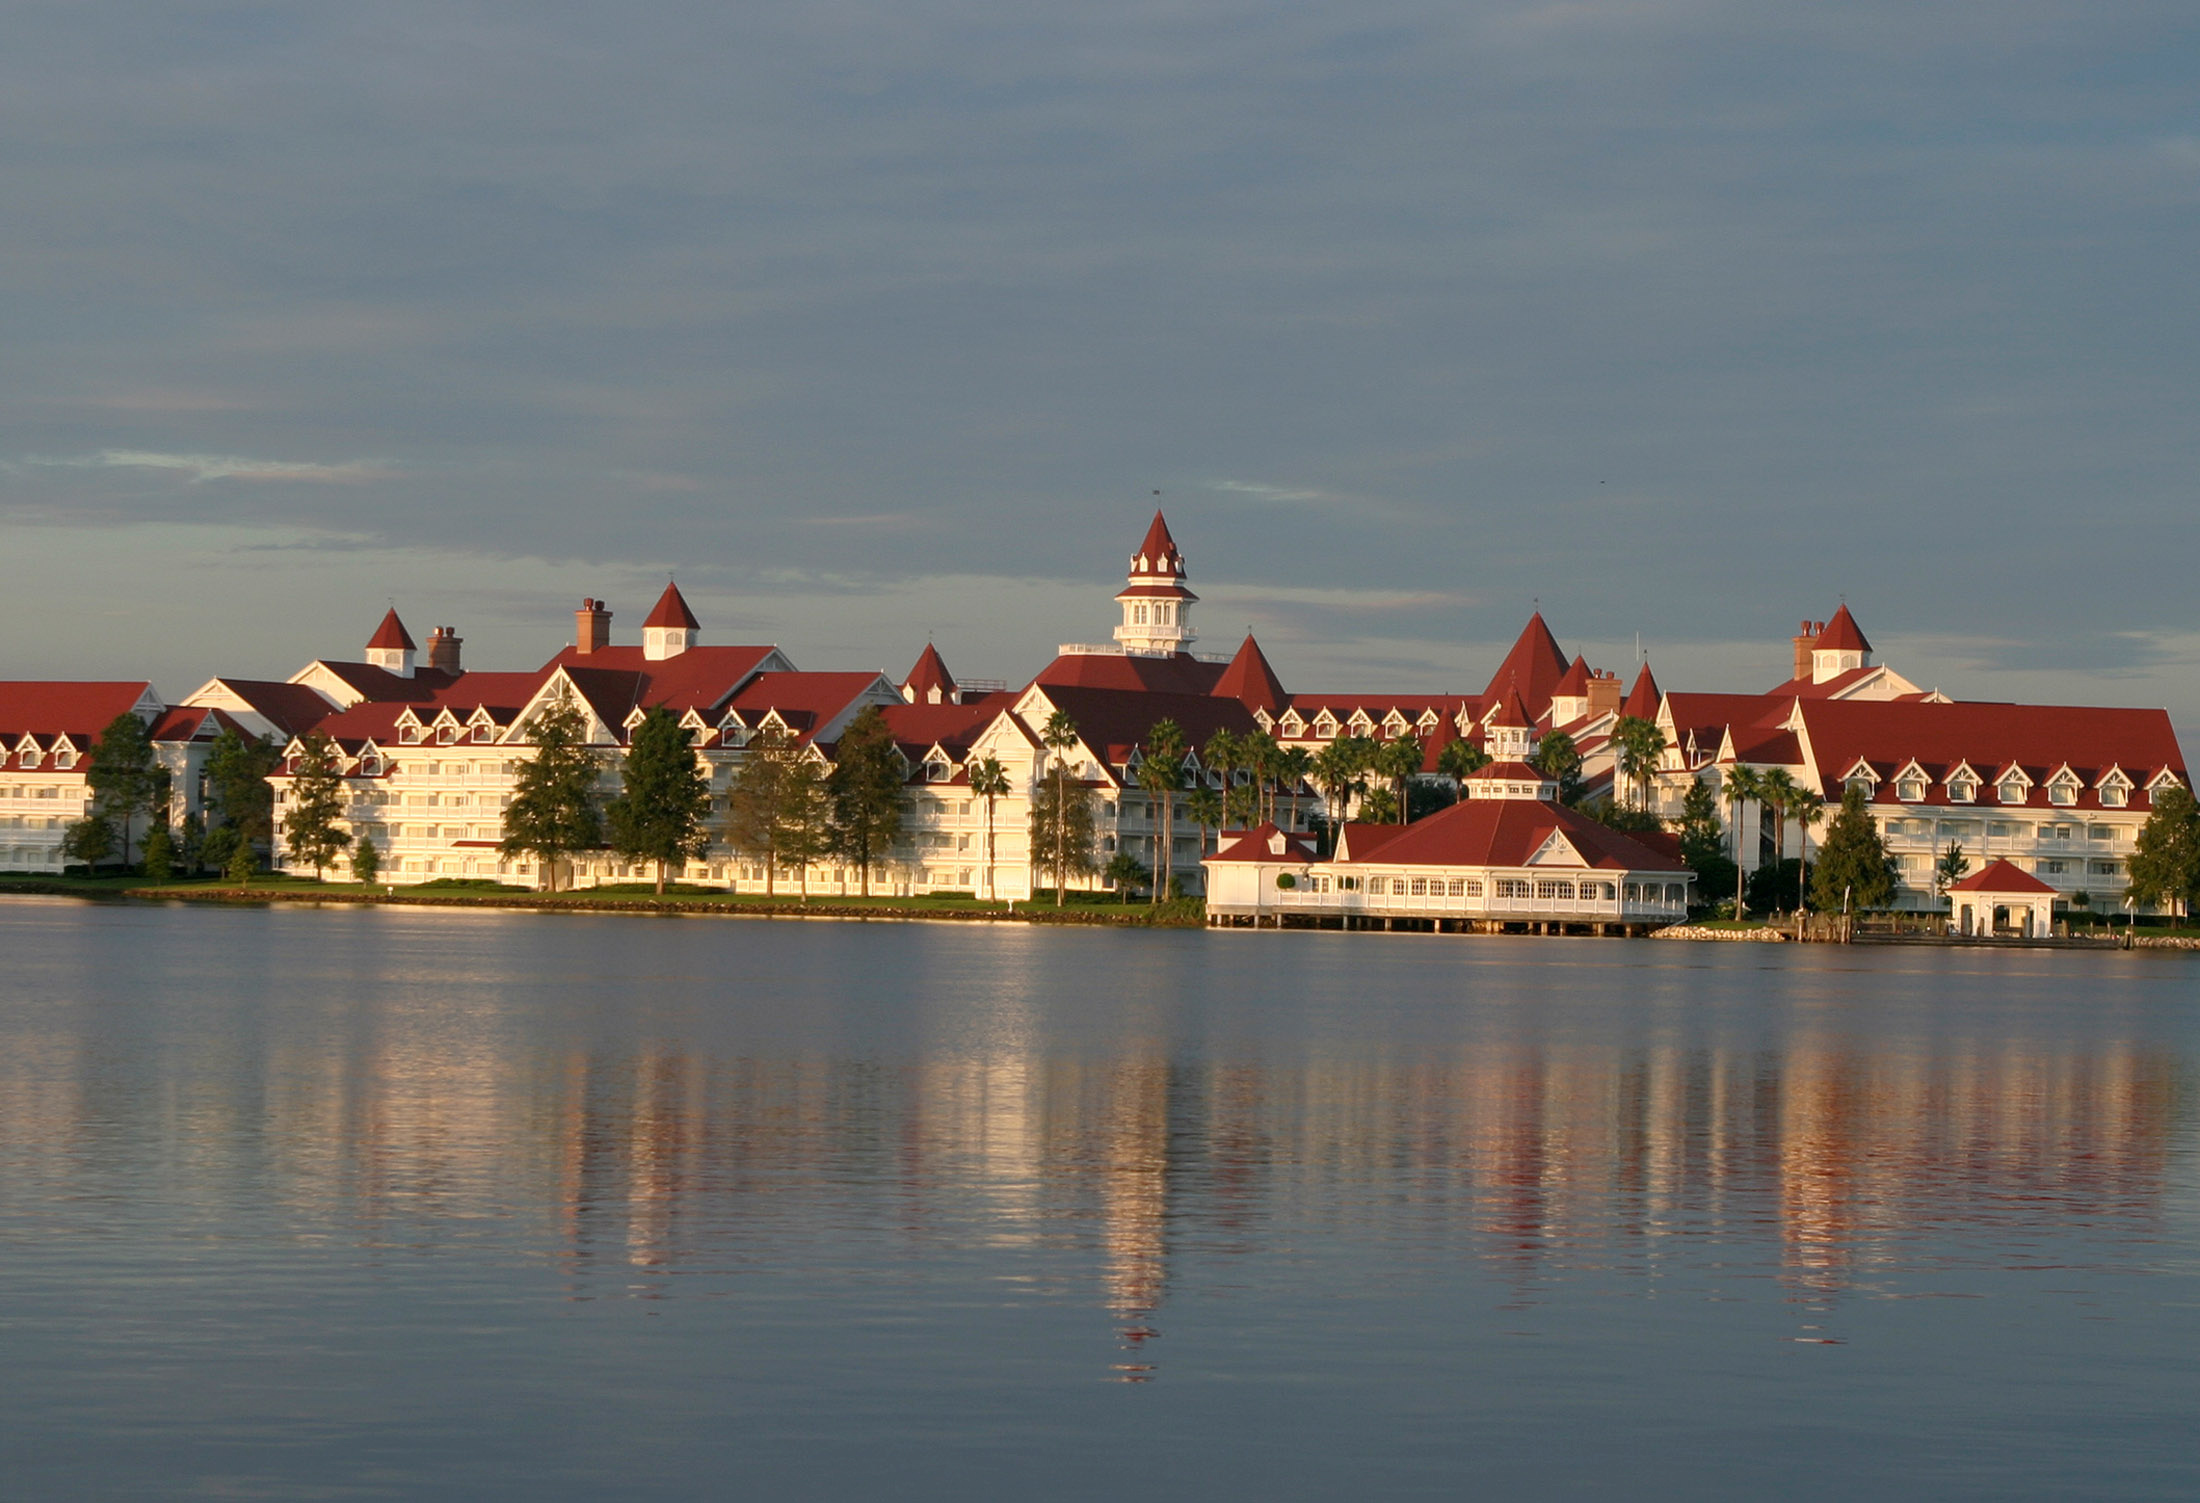 Early morning view of the Grand Floridian Resort and Spa located in the Magic Kingdom at Disney World in Orlando